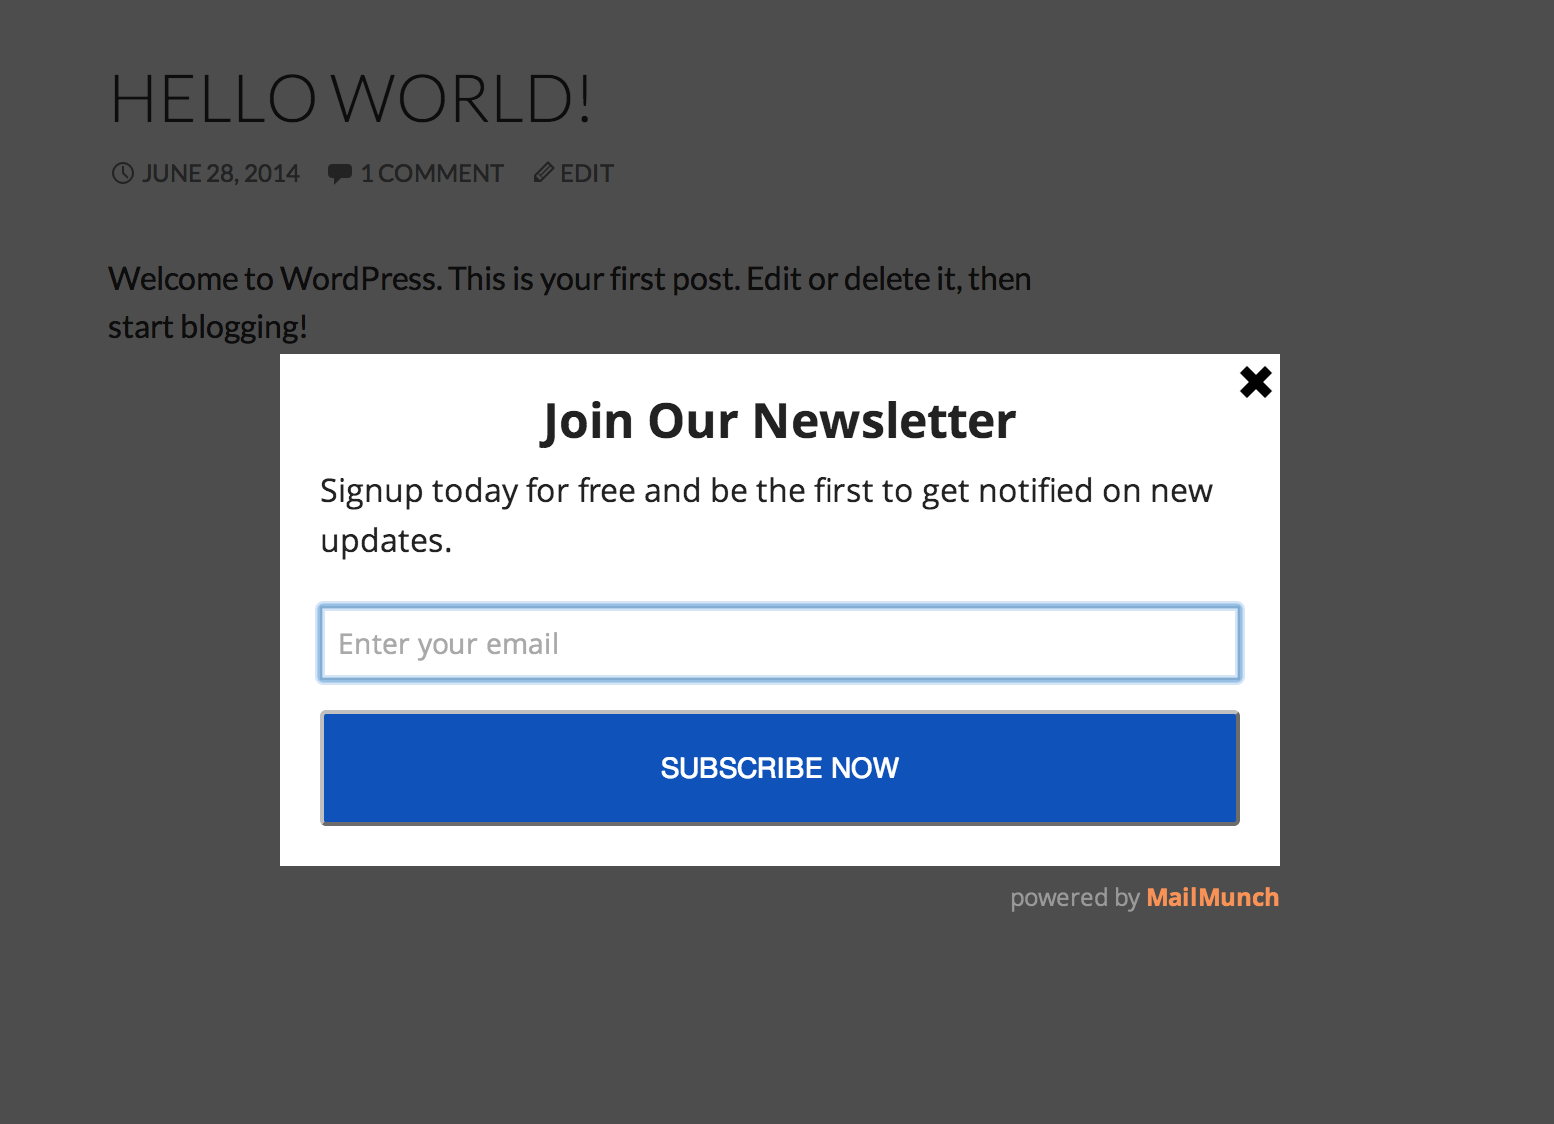 And finally, we have the optin form working live on your blog - increasing your subscribers :)